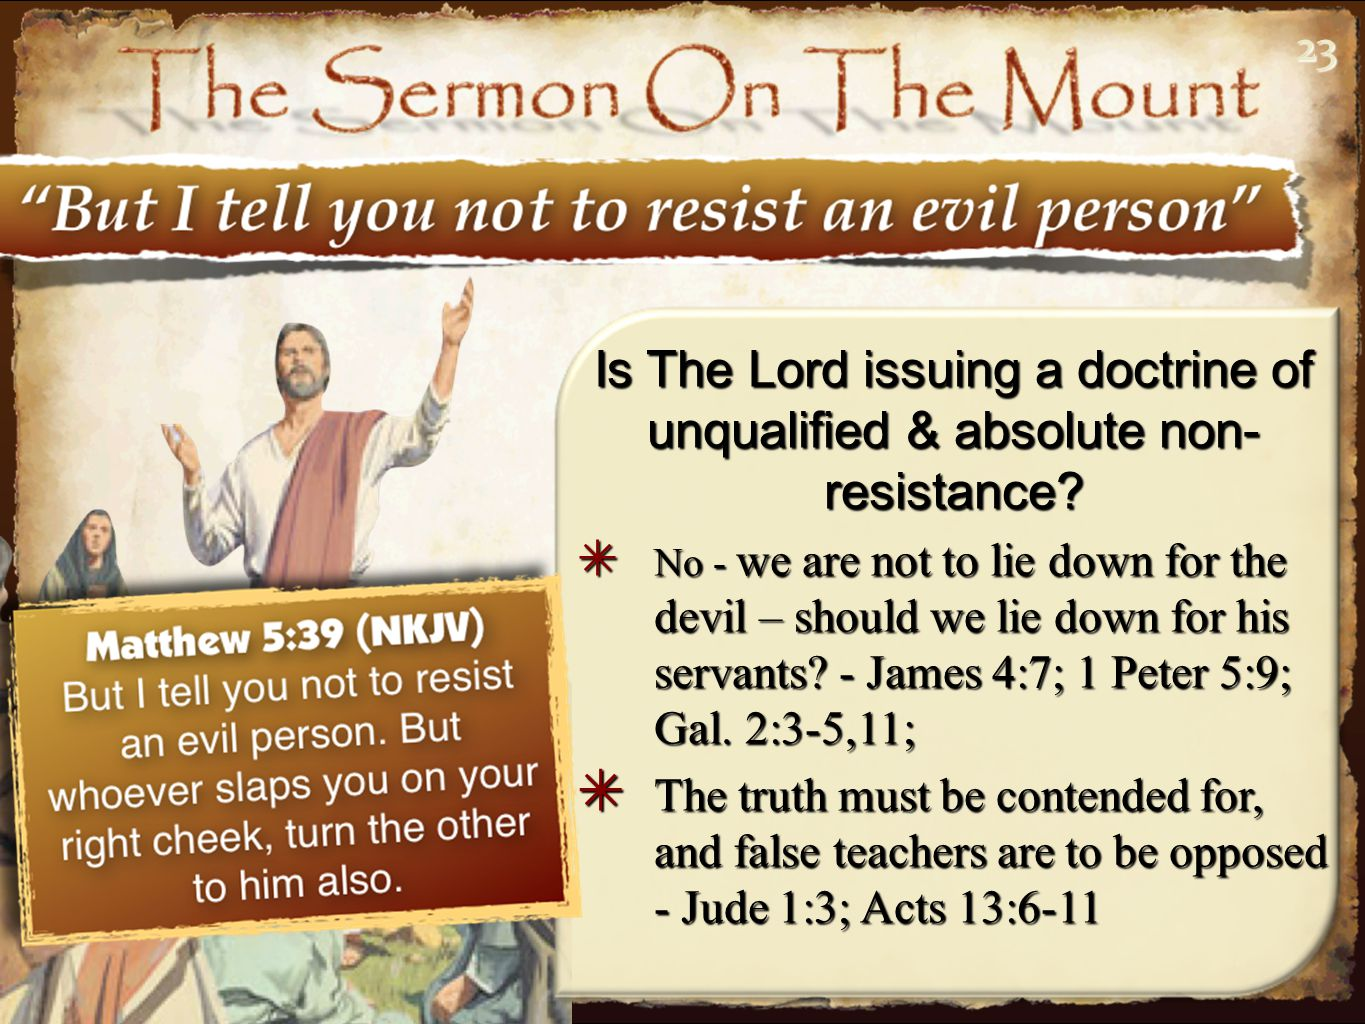 2323 Is The Lord issuing a doctrine of unqualified & absolute non- resistance.